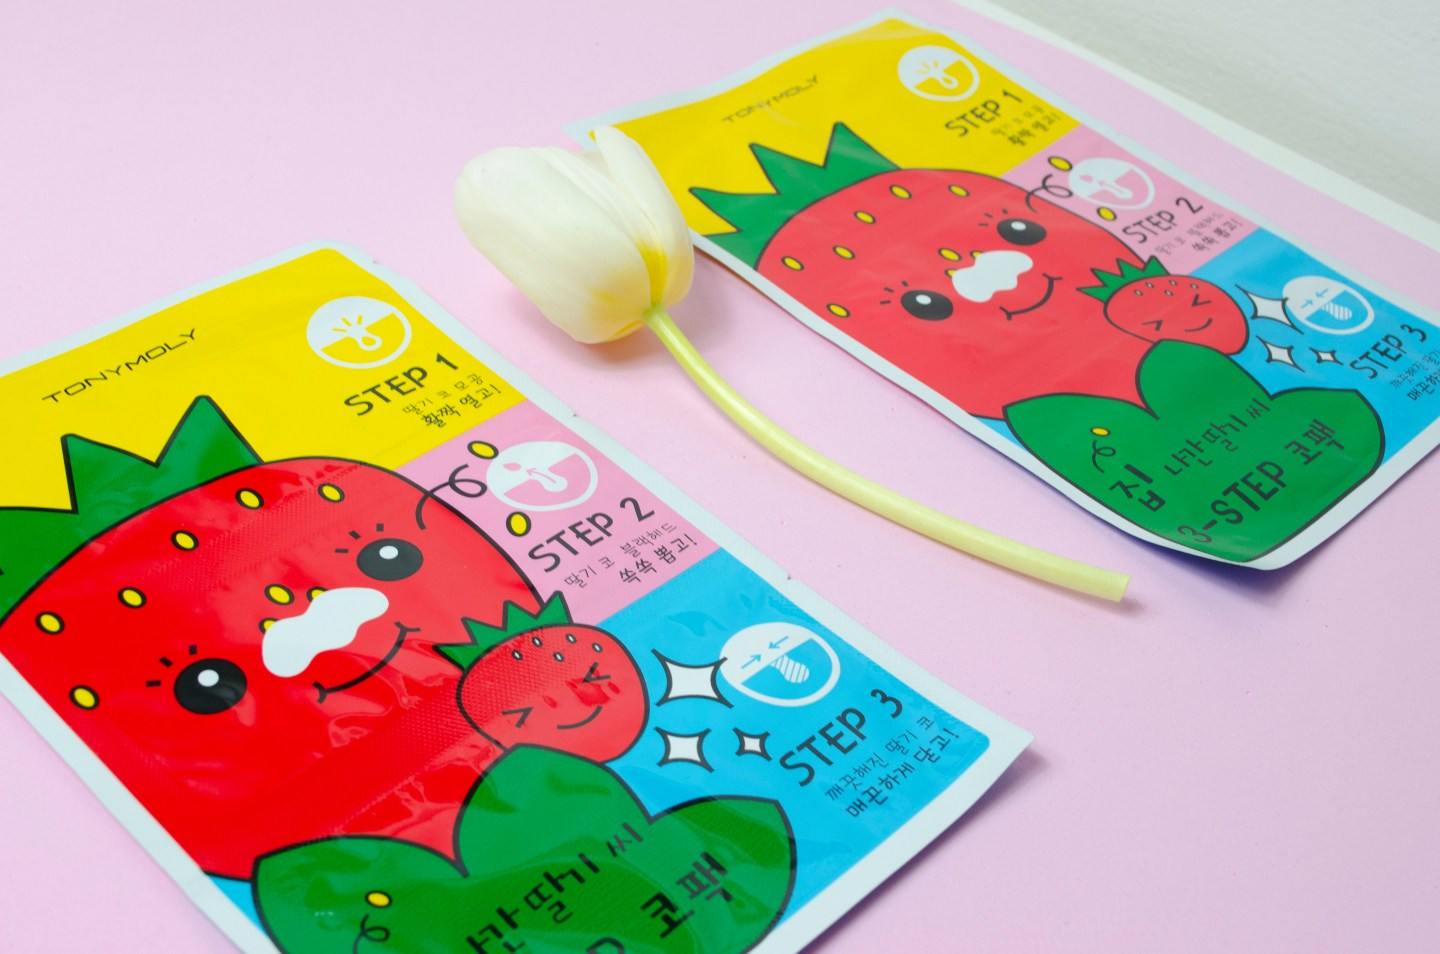 Tony_Moly_Strawberry_Nose_Pack_Lilyscolours